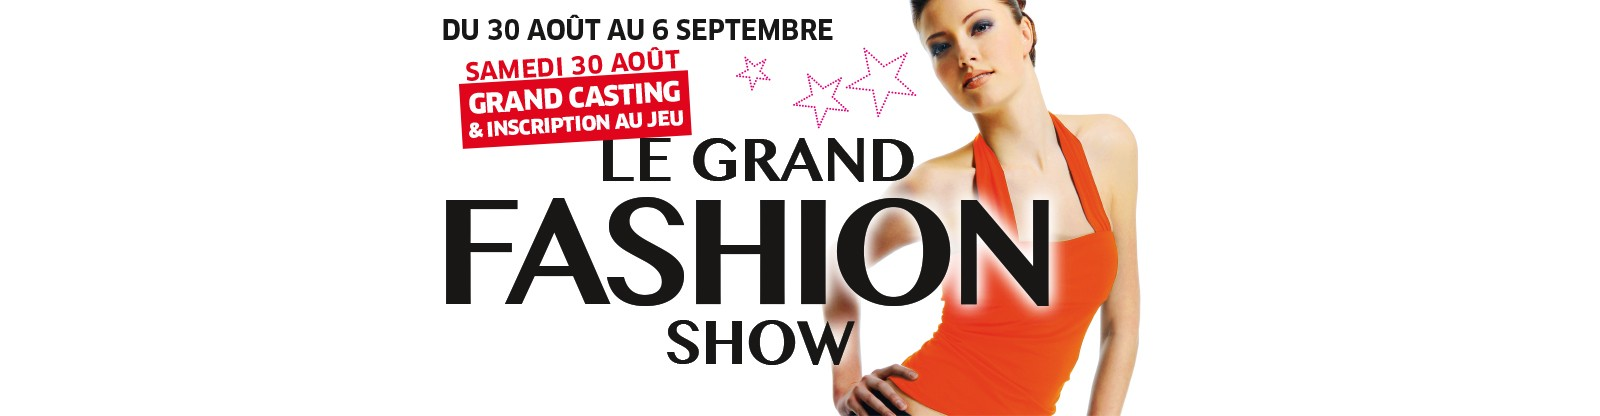 carrefour-Lescar-gd-fashion-show-site-internet-visuel-home-1